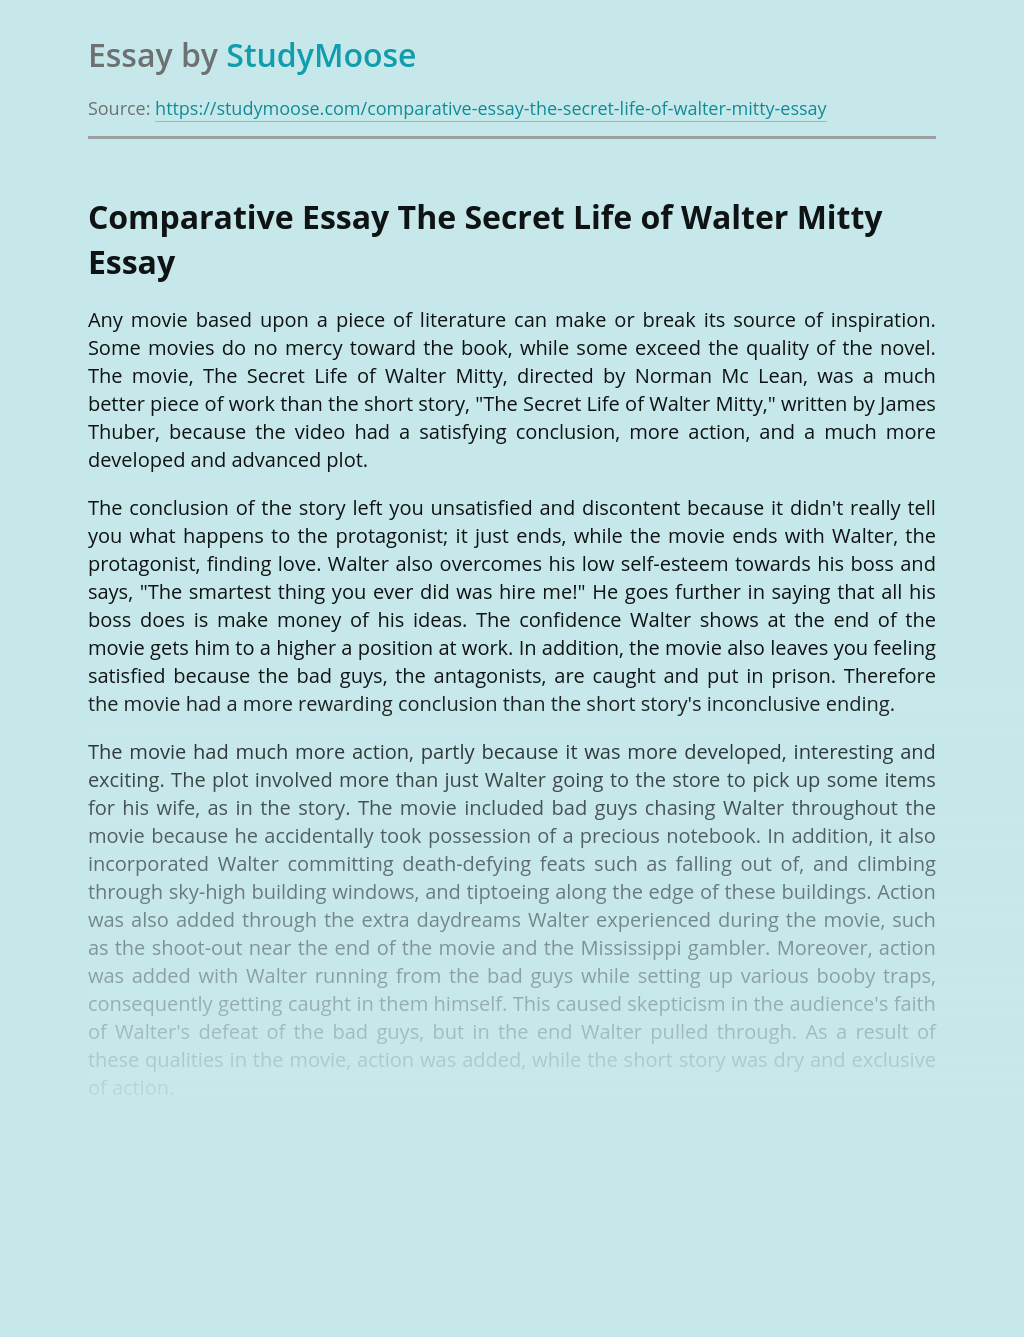 Comparative Essay The Secret Life of Walter Mitty